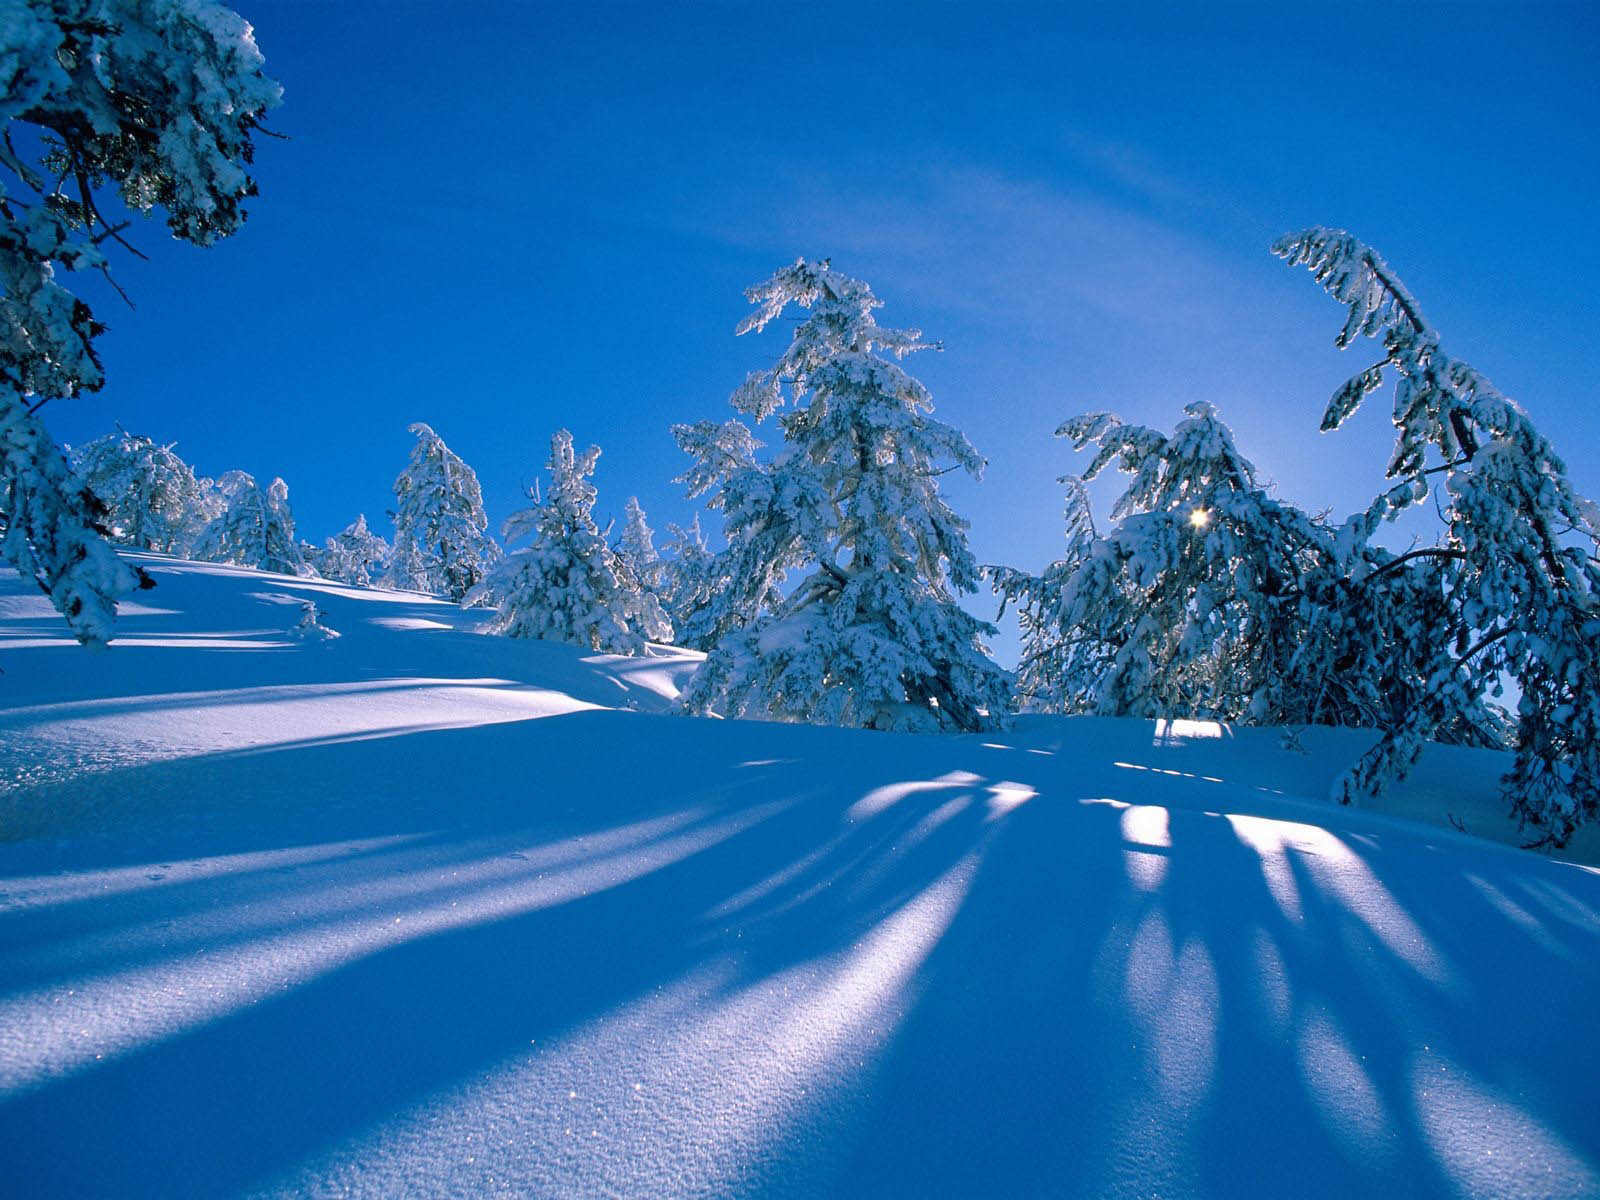 Winter Desktop Wallpapers and Backgrounds 1600x1200